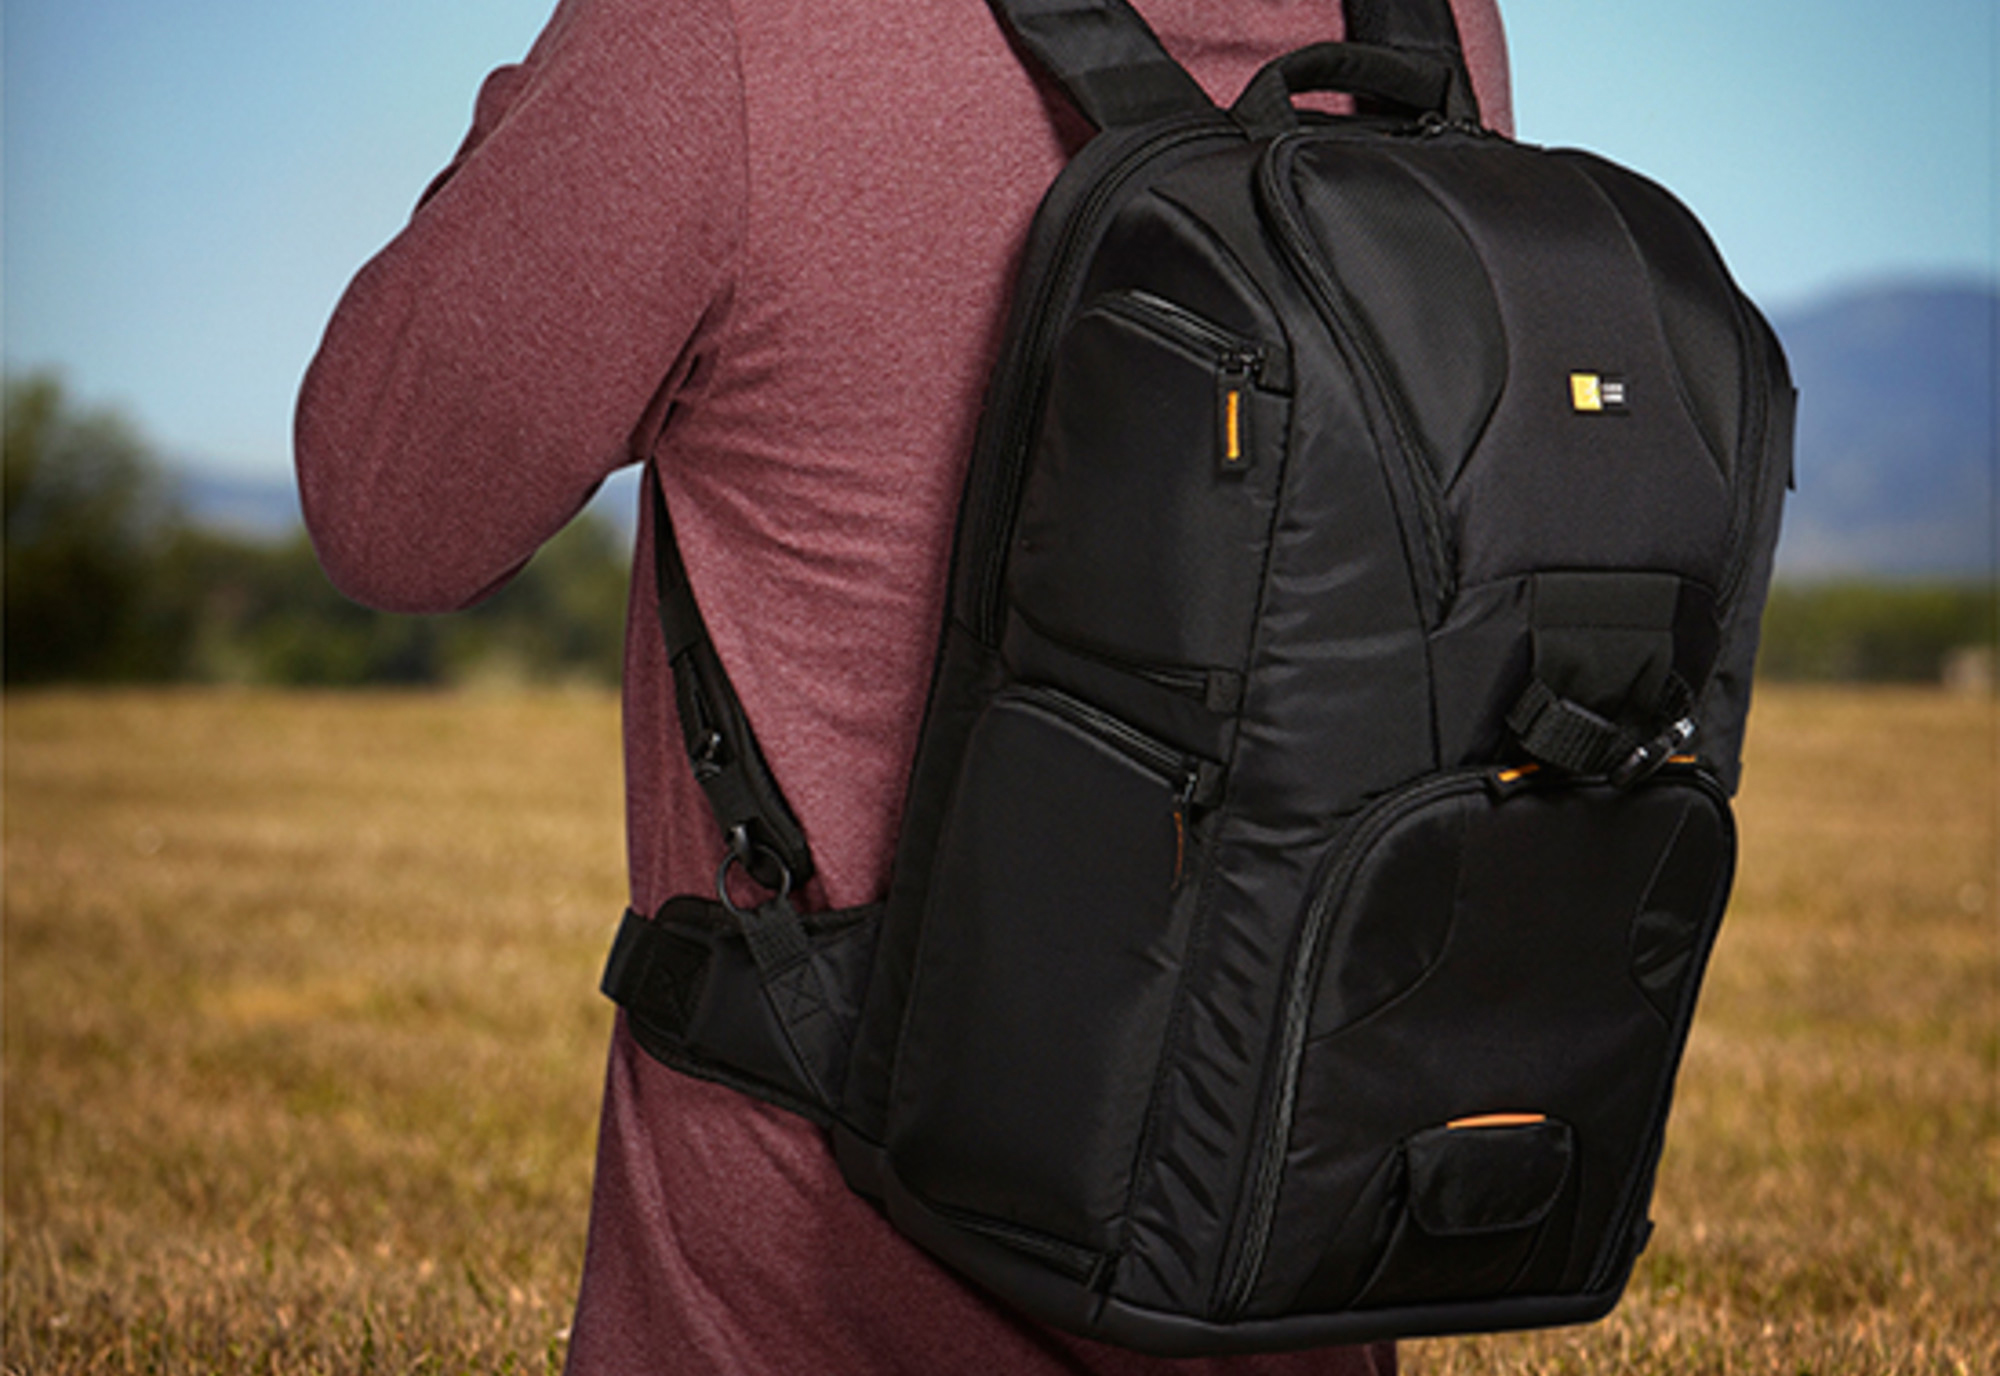 CAMERA BAG – LIGHTWEIGHT AND HAS MORE STORAGE